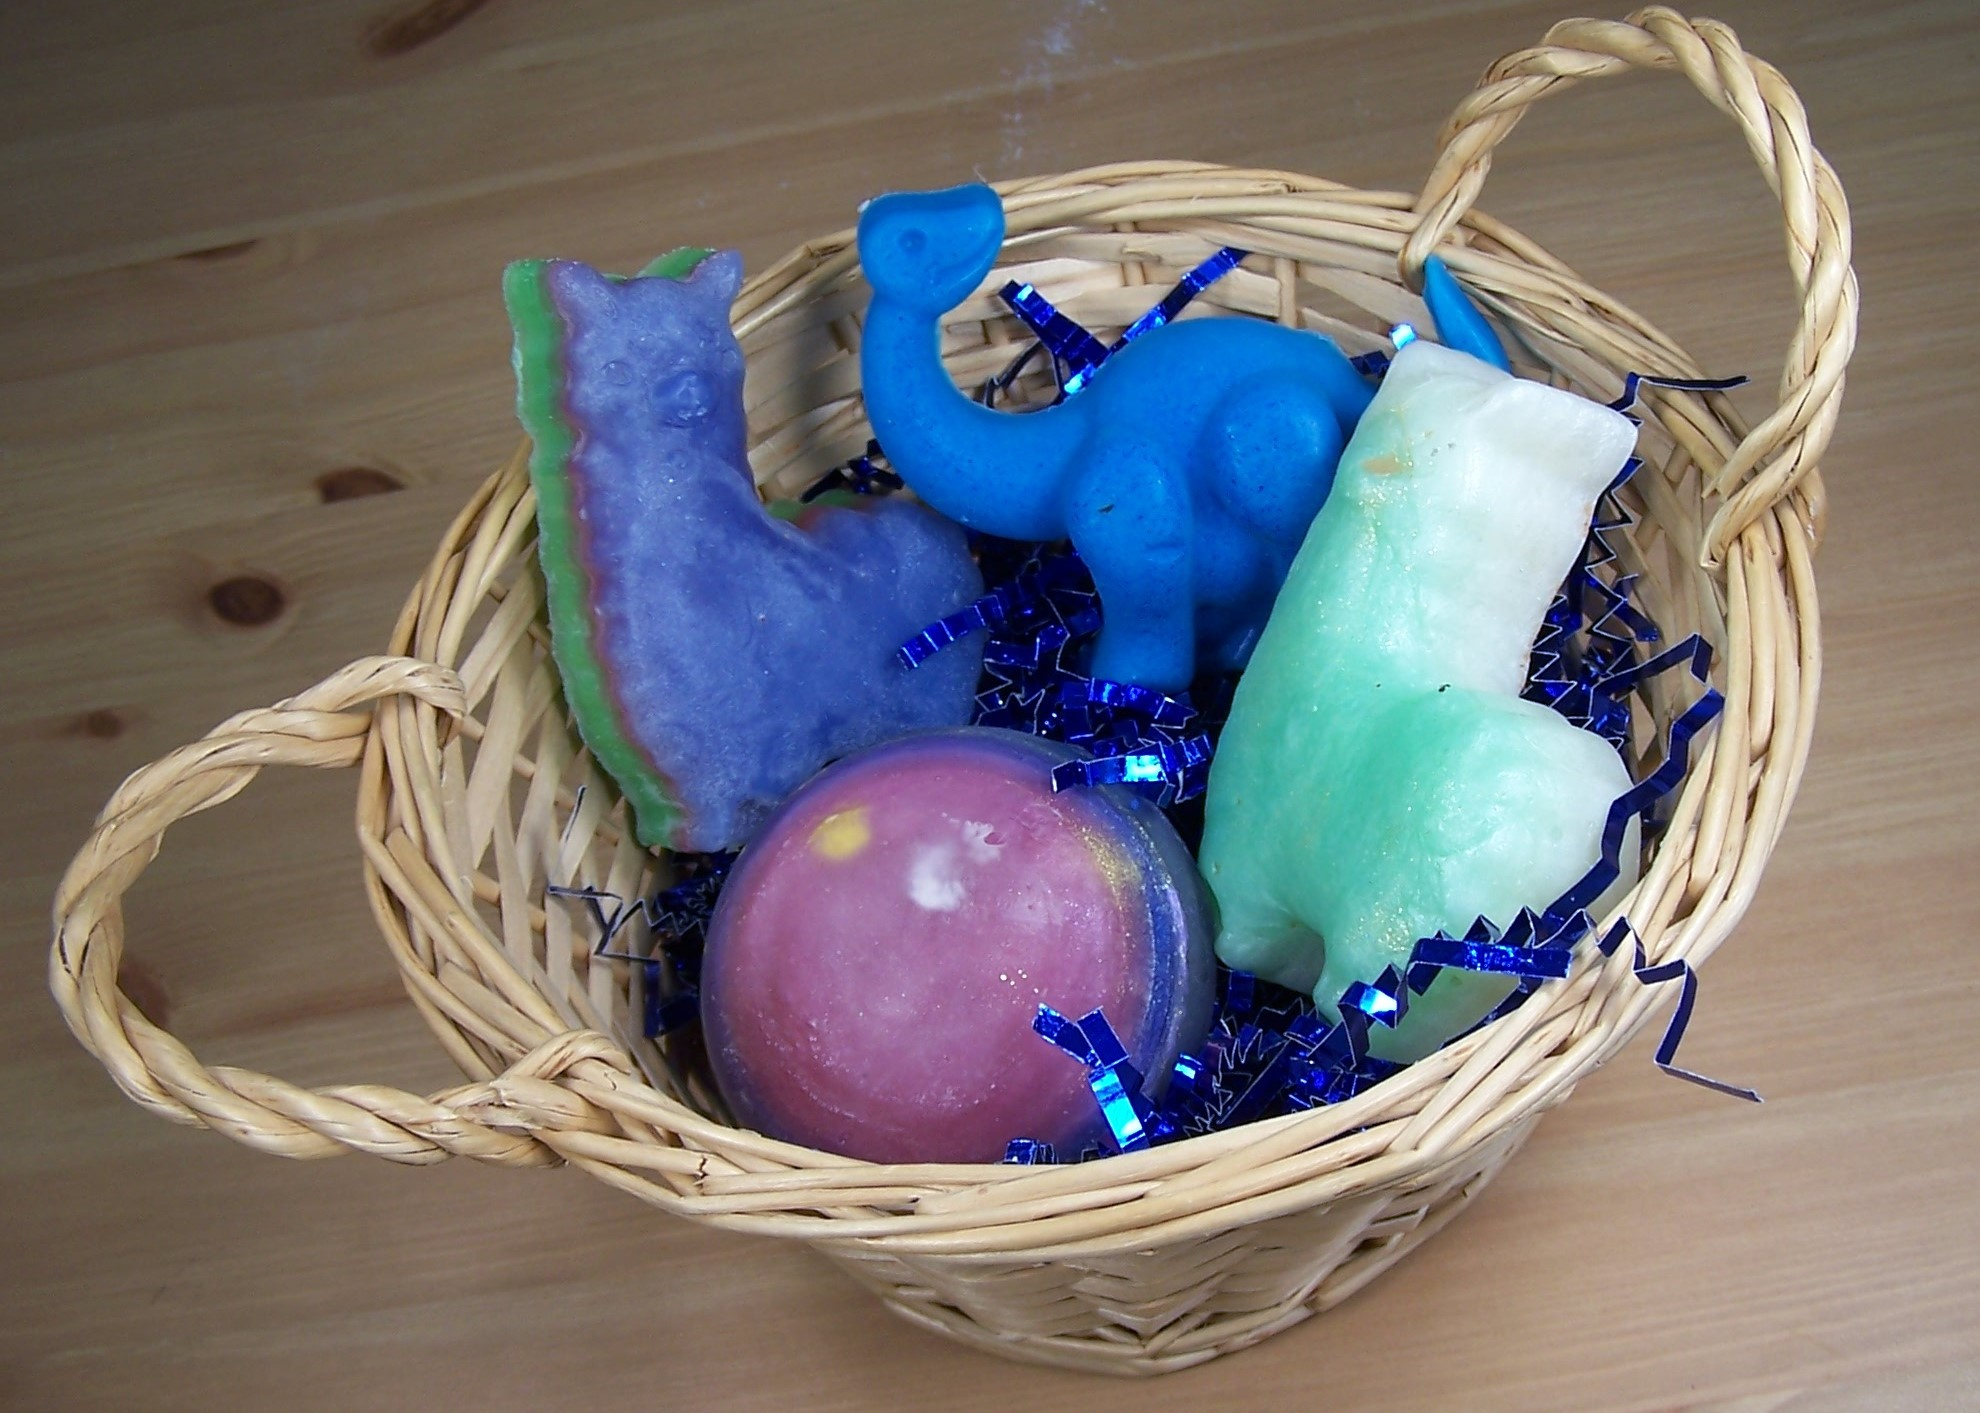 Novelty Basket: 4 Soap Bars